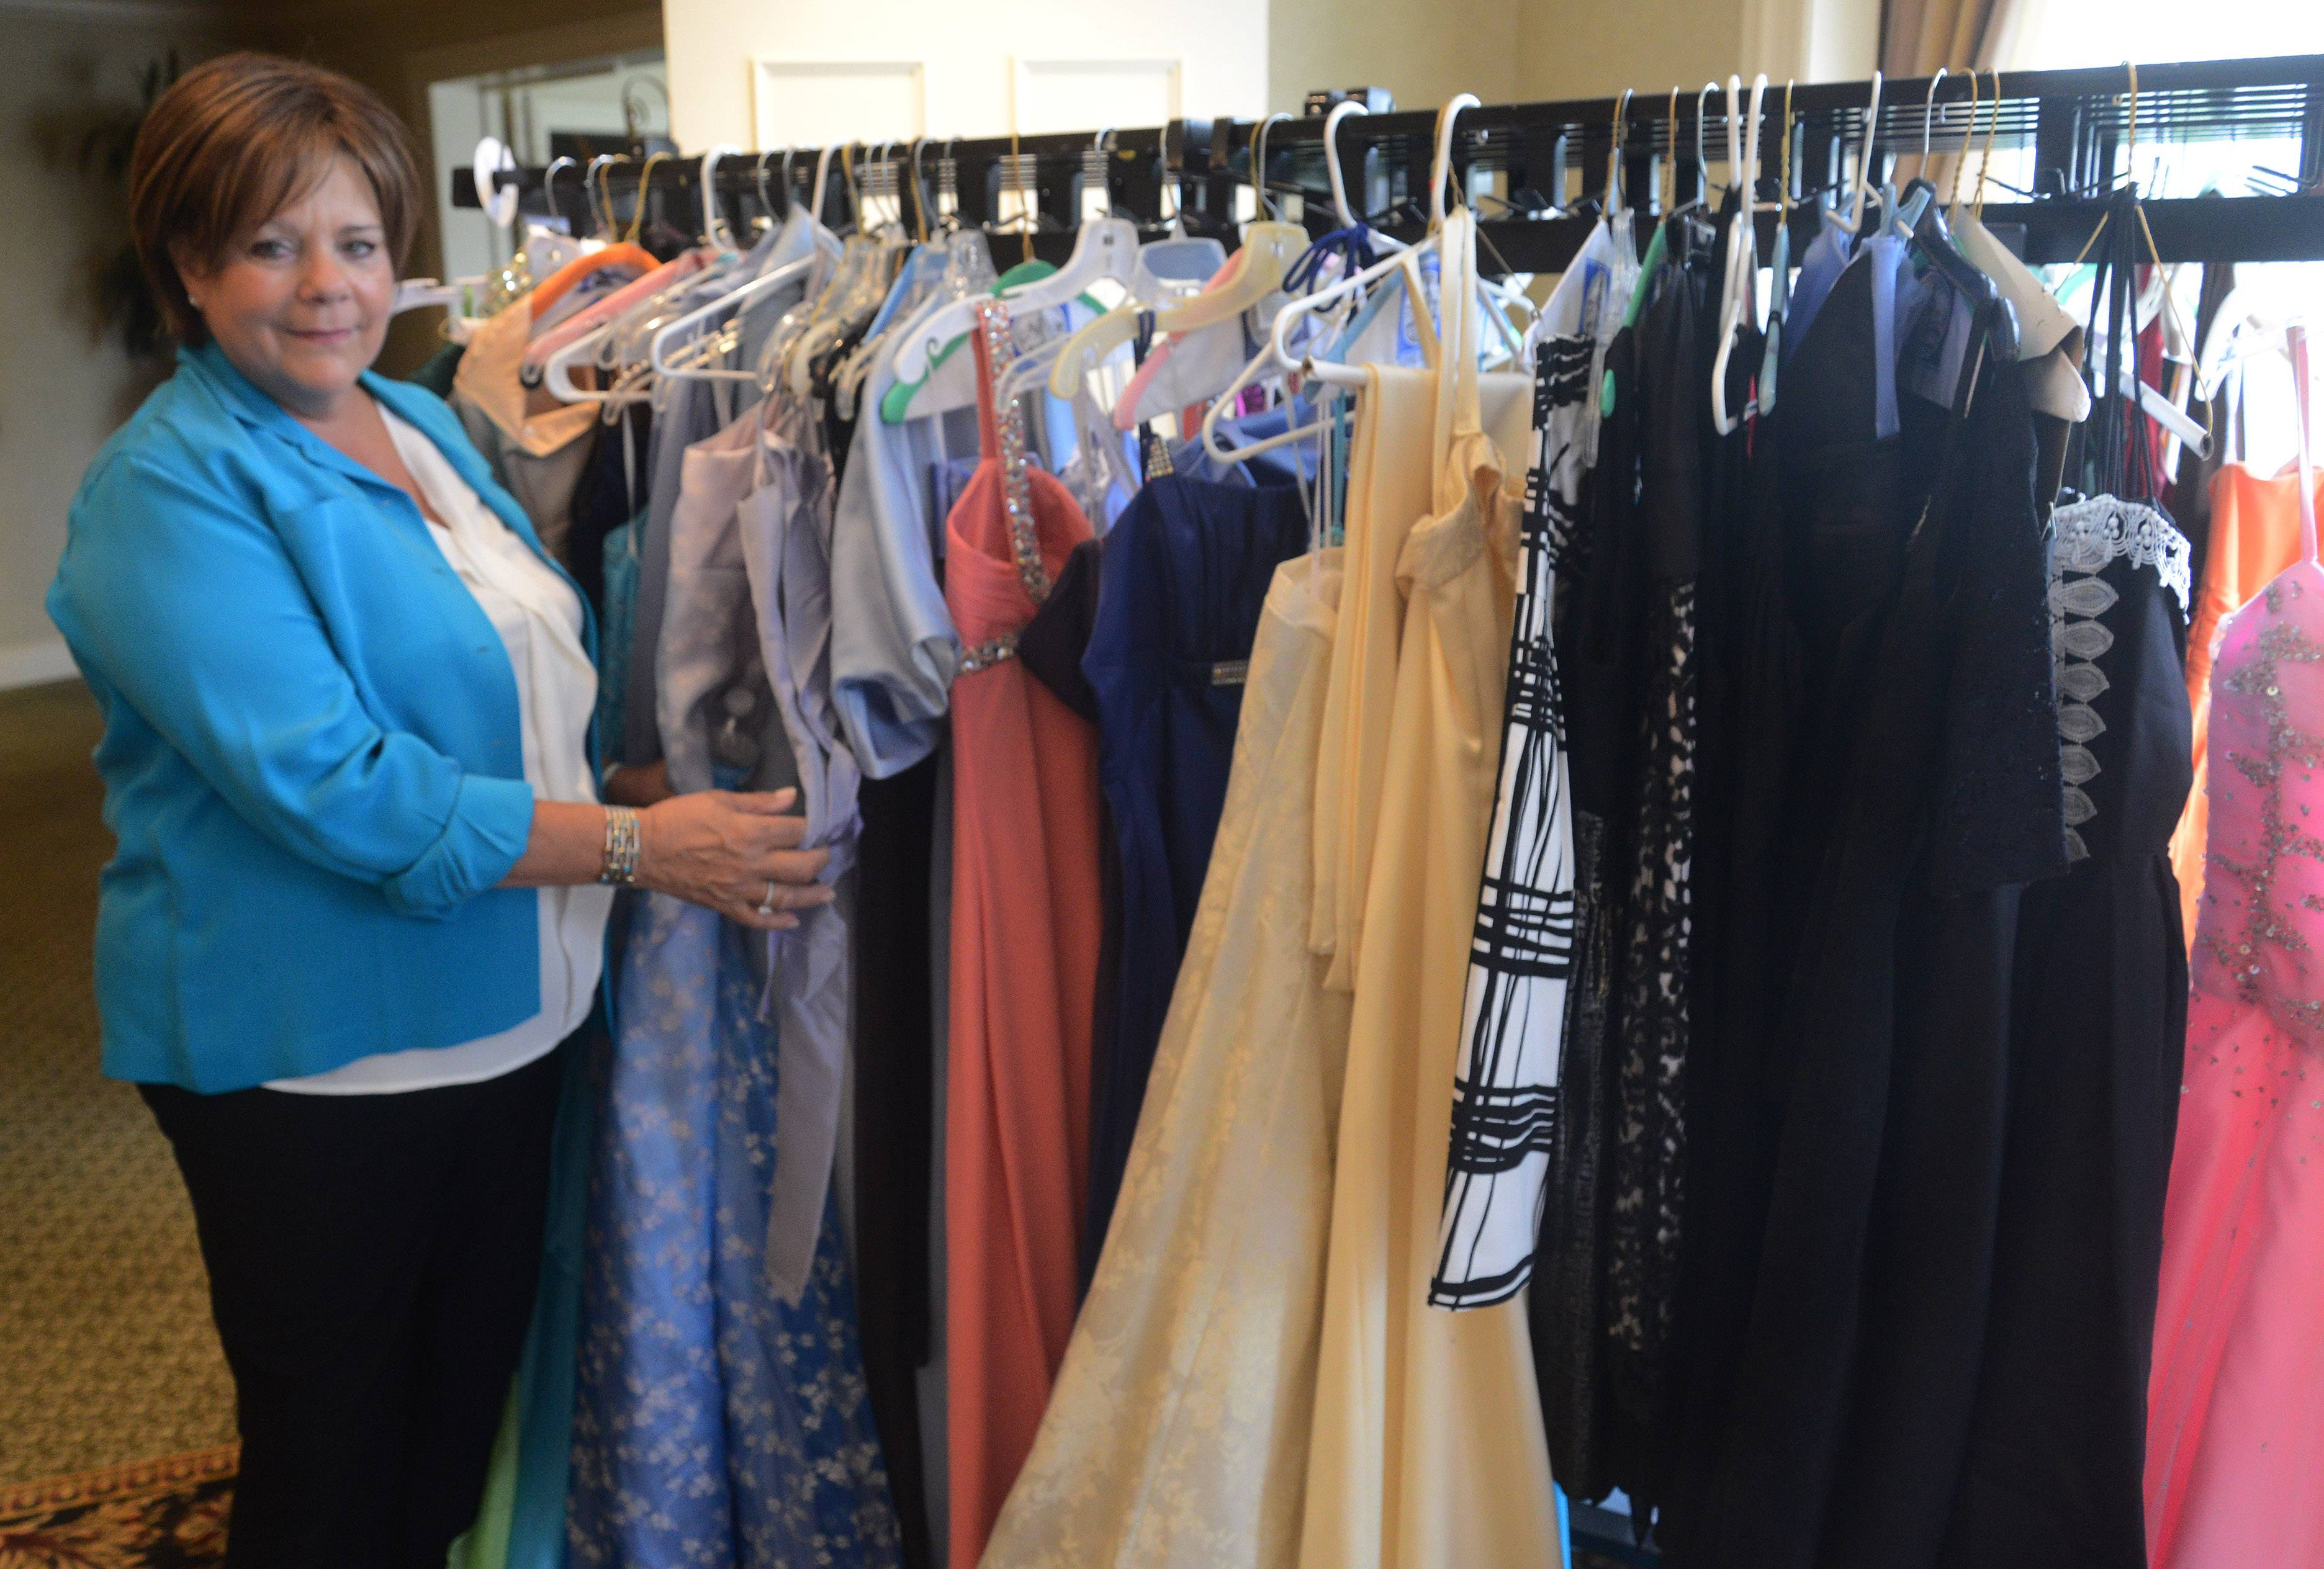 Michaelene Roark, president of the Women's Club of Rolling Green Country Club in Arlington Heights, organized the donation drive, accumulating more than 400 dresses and accessories.